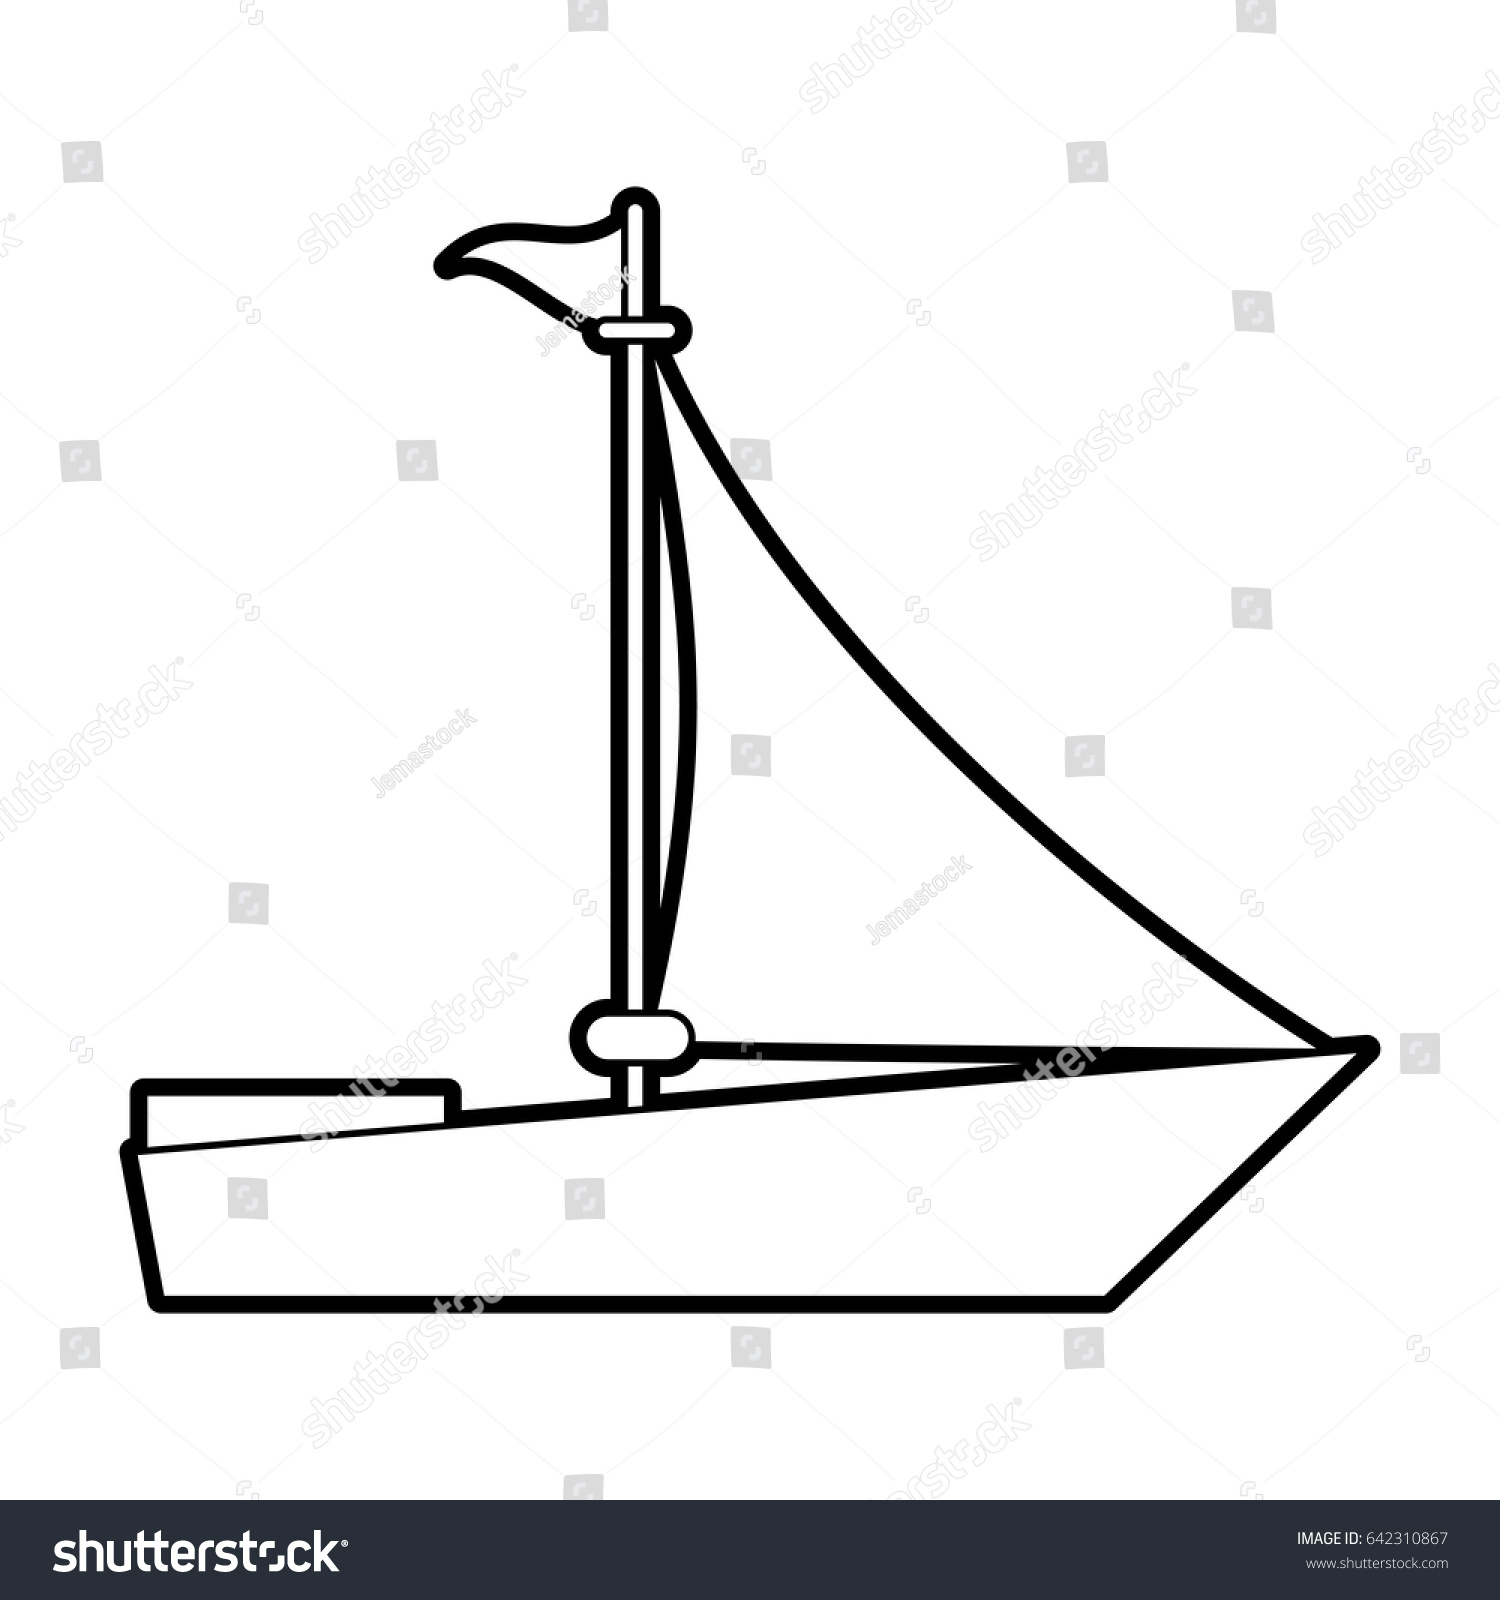 Sketch Silhouette Image Wooden Boat With Sail